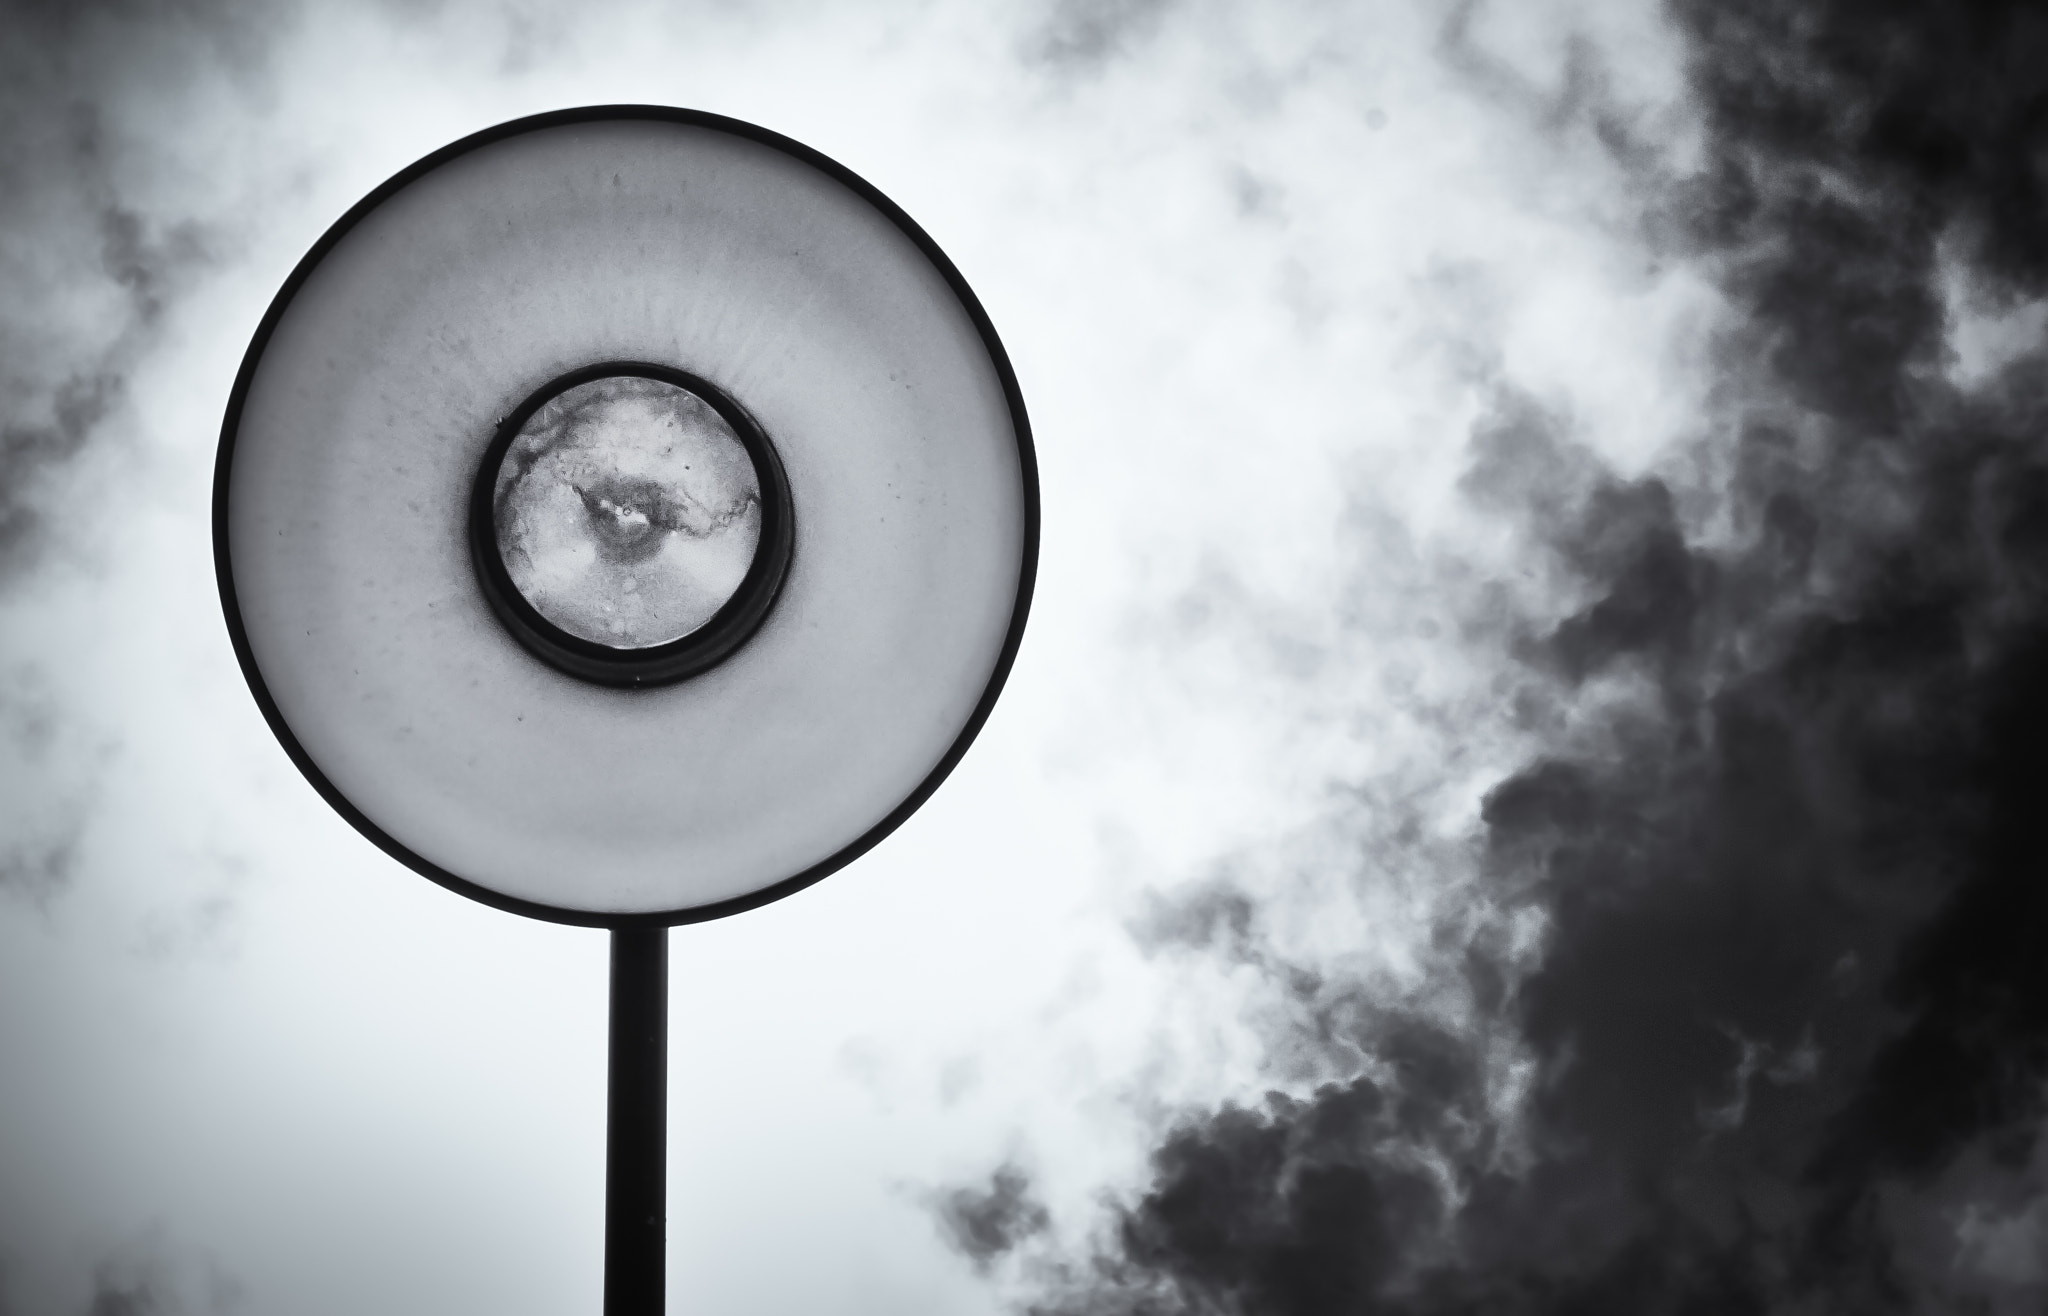 Photograph Street Light by Gabrielle Cordero on 500px